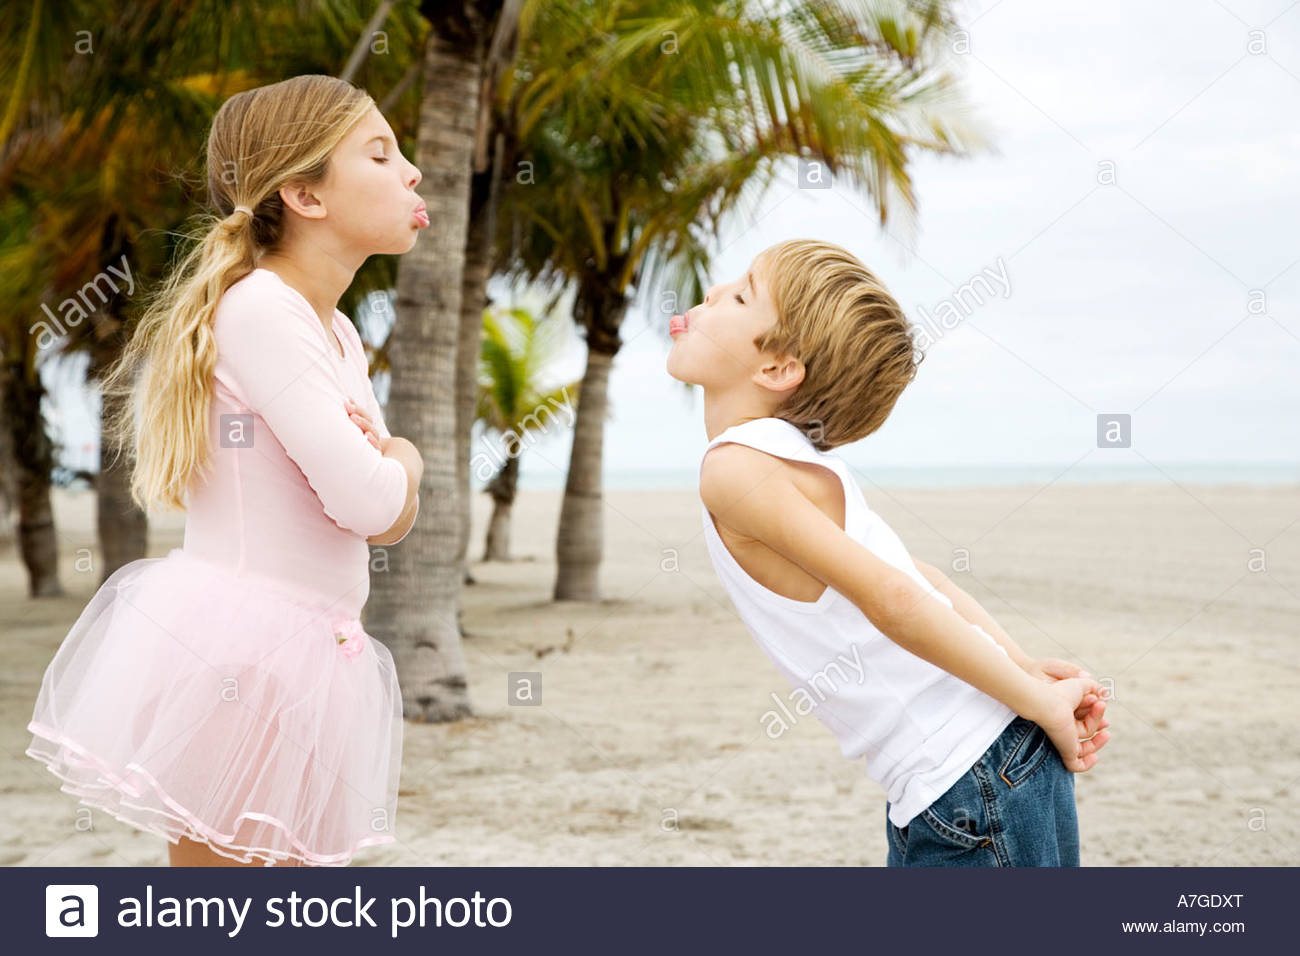 Two children on a beach - Stock Image